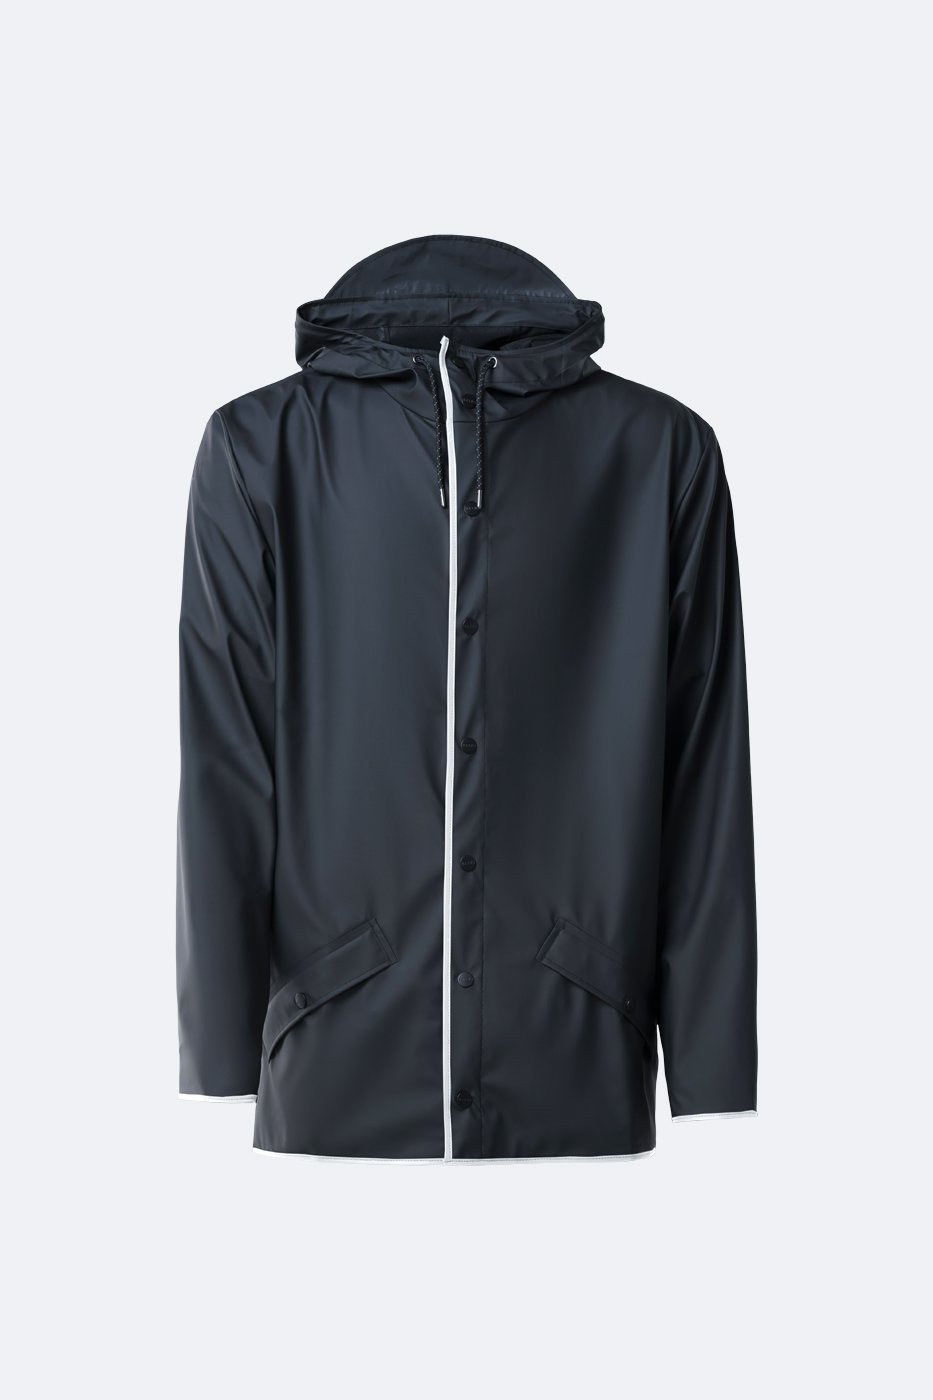 Wise Buying: Deciding Factors for Getting a Rain Jacket